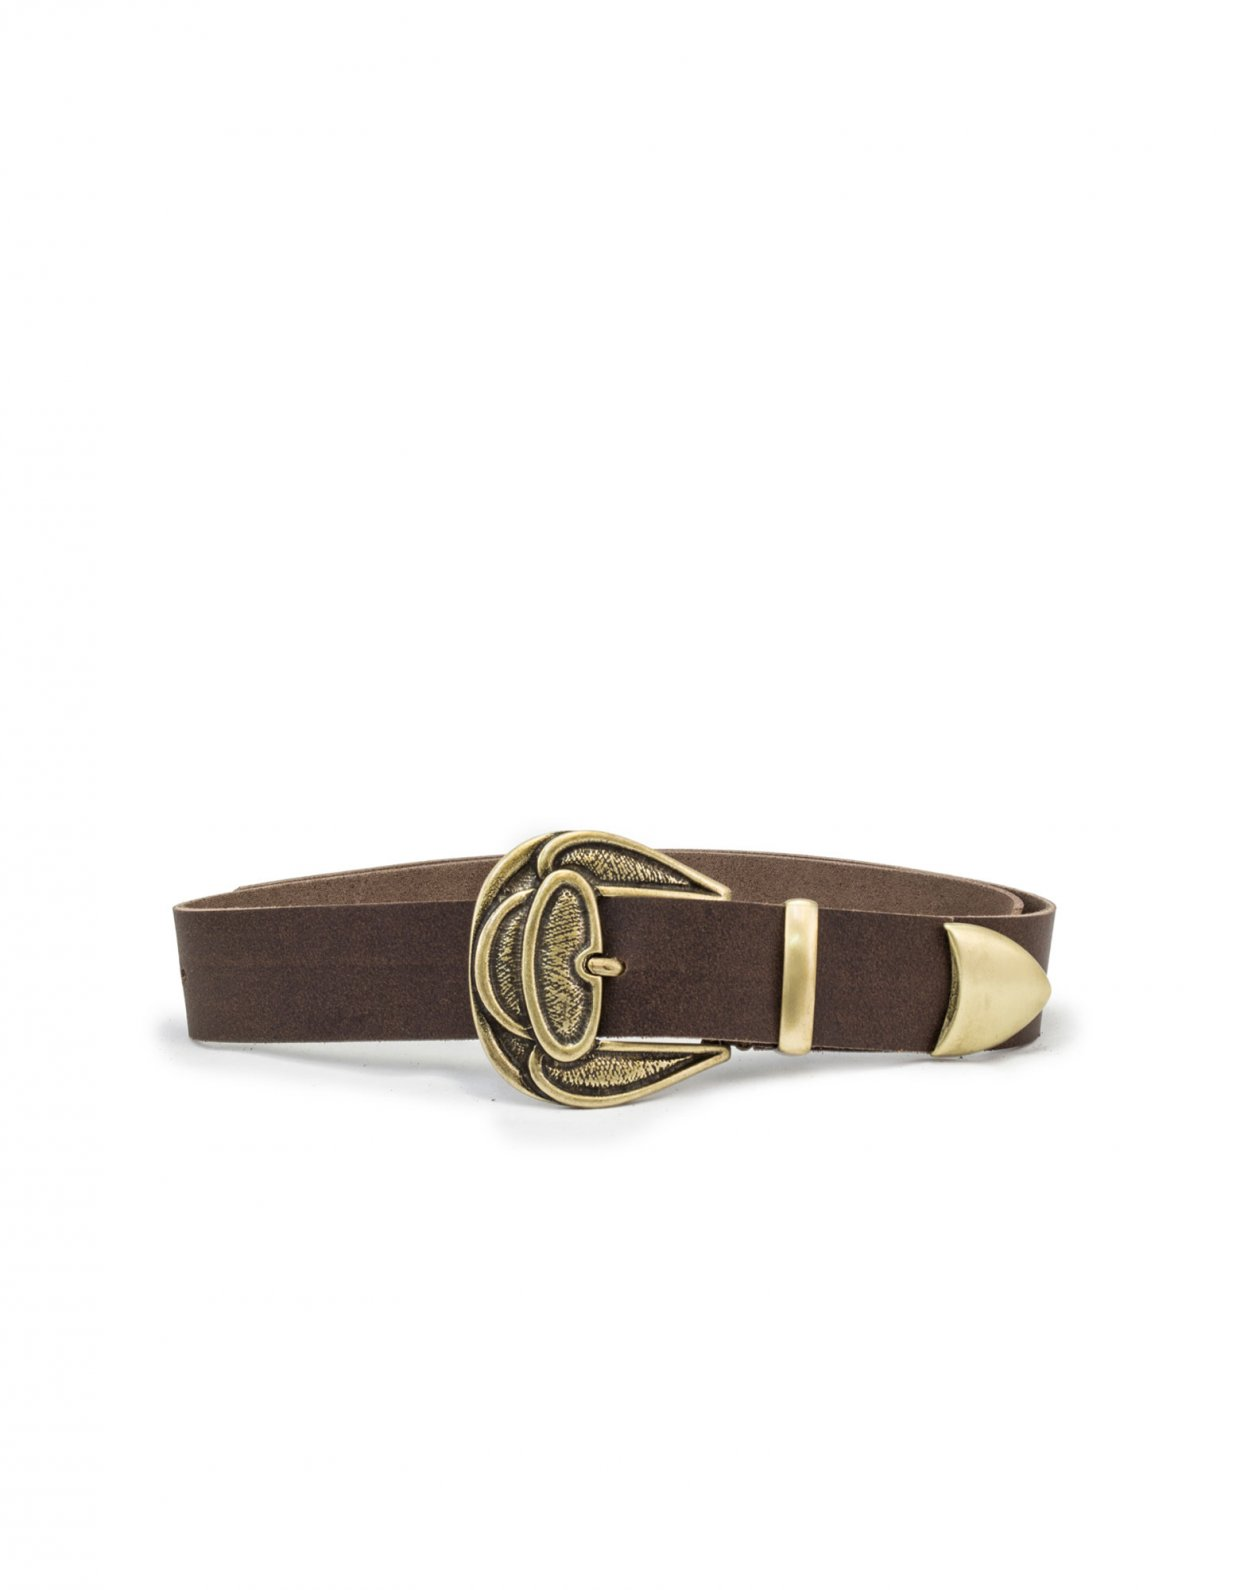 Individual Art Leather Lullaby brown belt